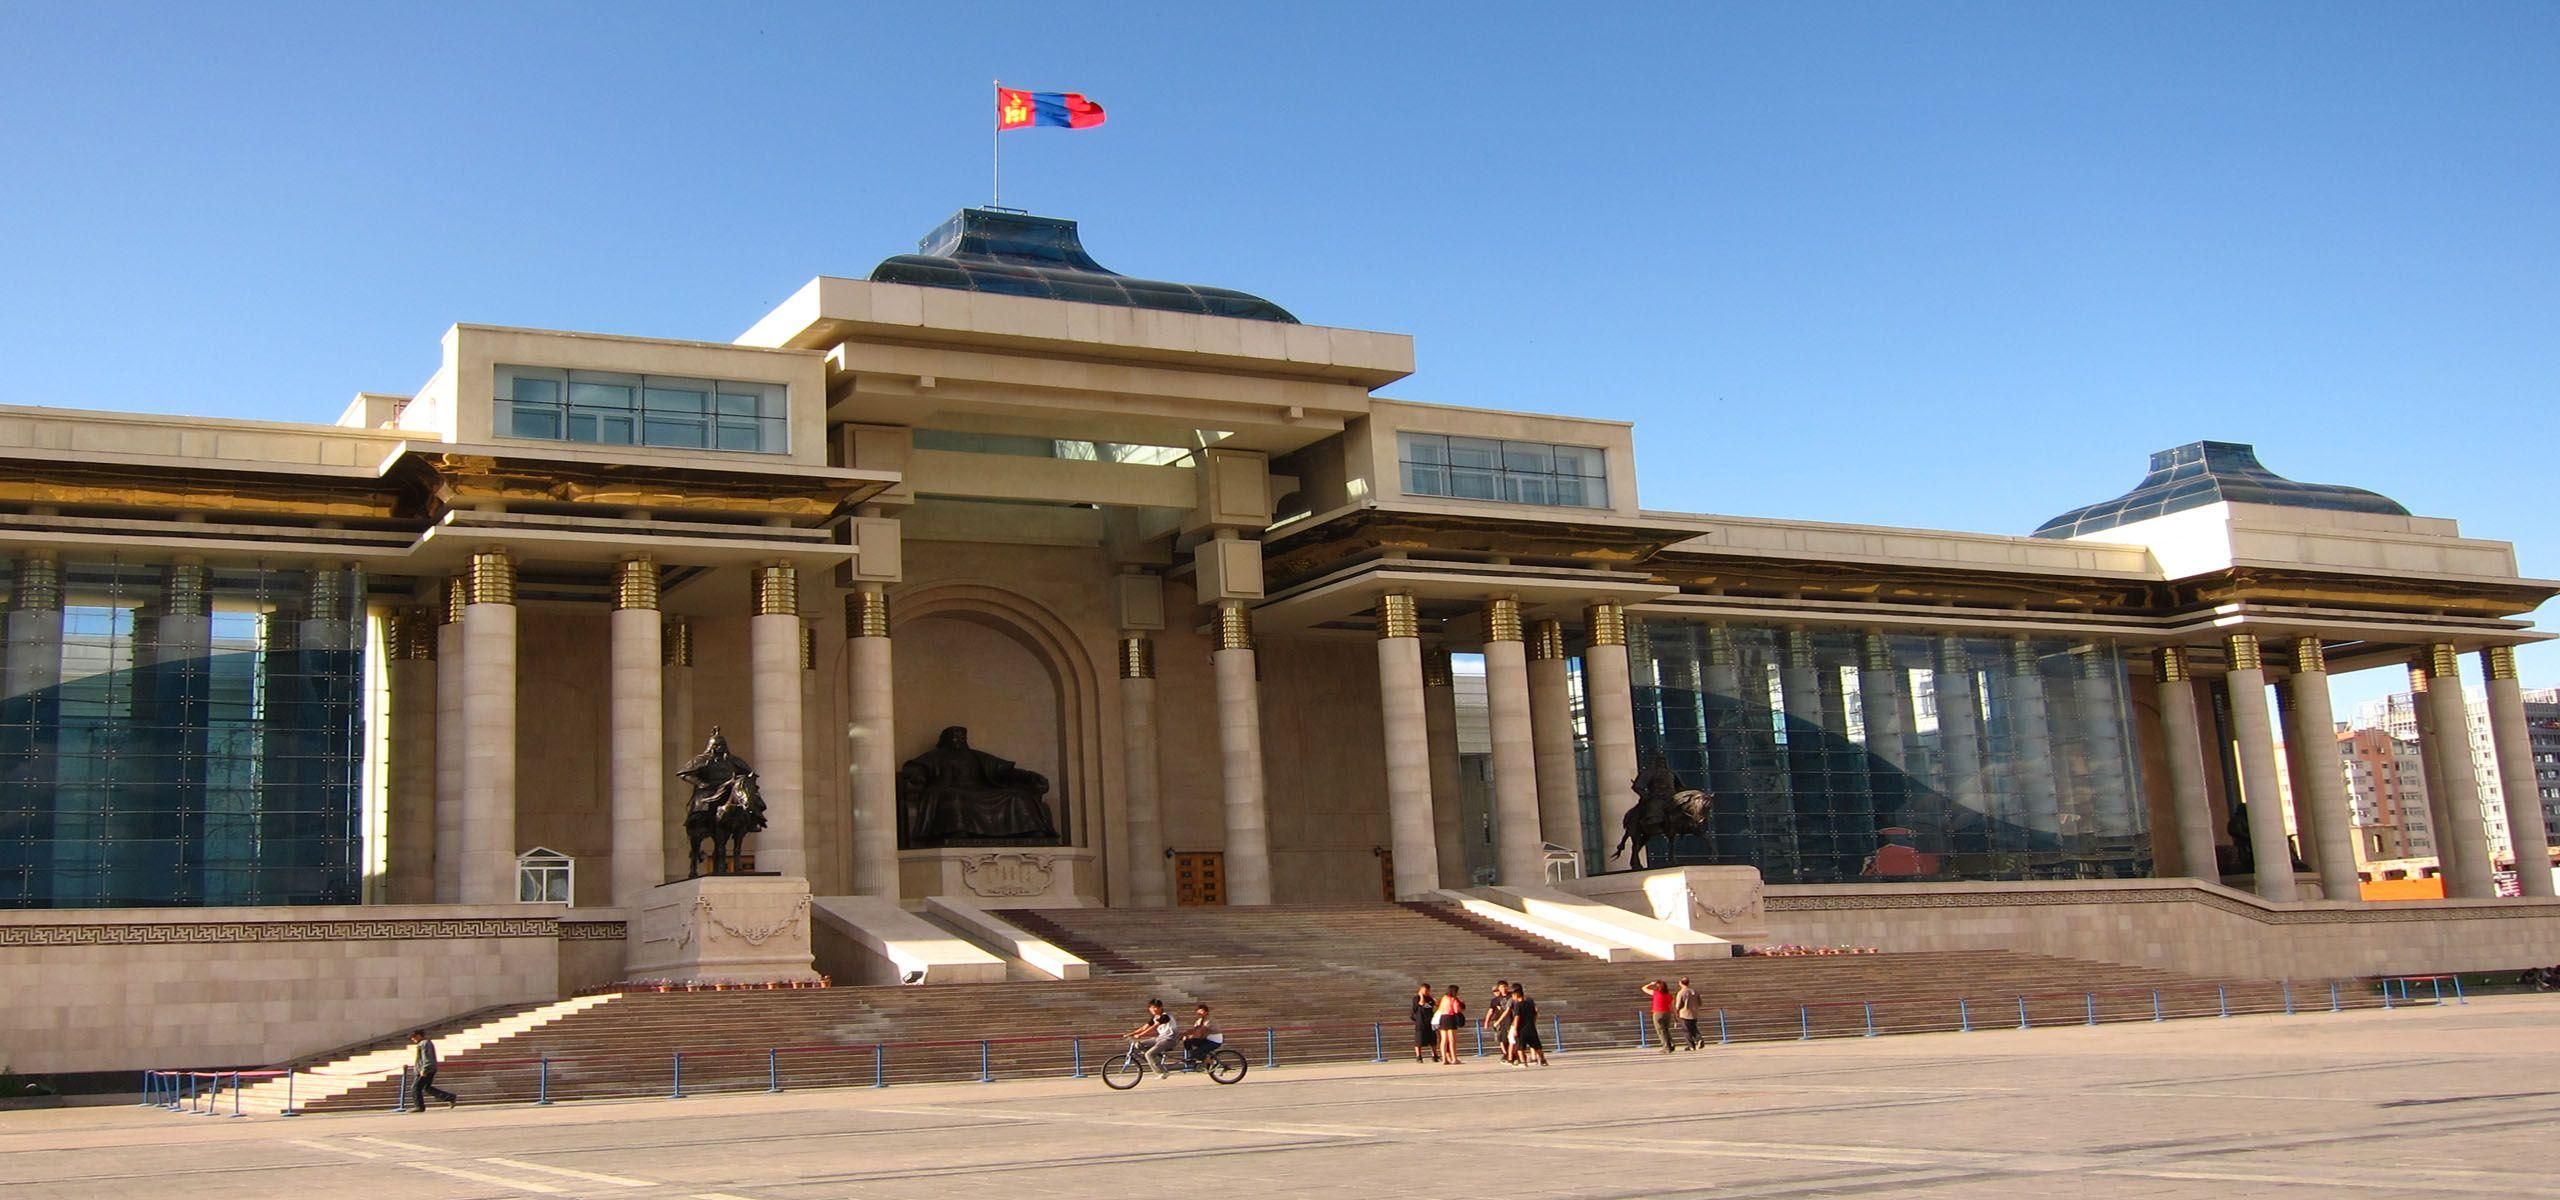 Sukhbaatar Square in Ulaanbaatar, Mongolia | wallpapers of Asia ...